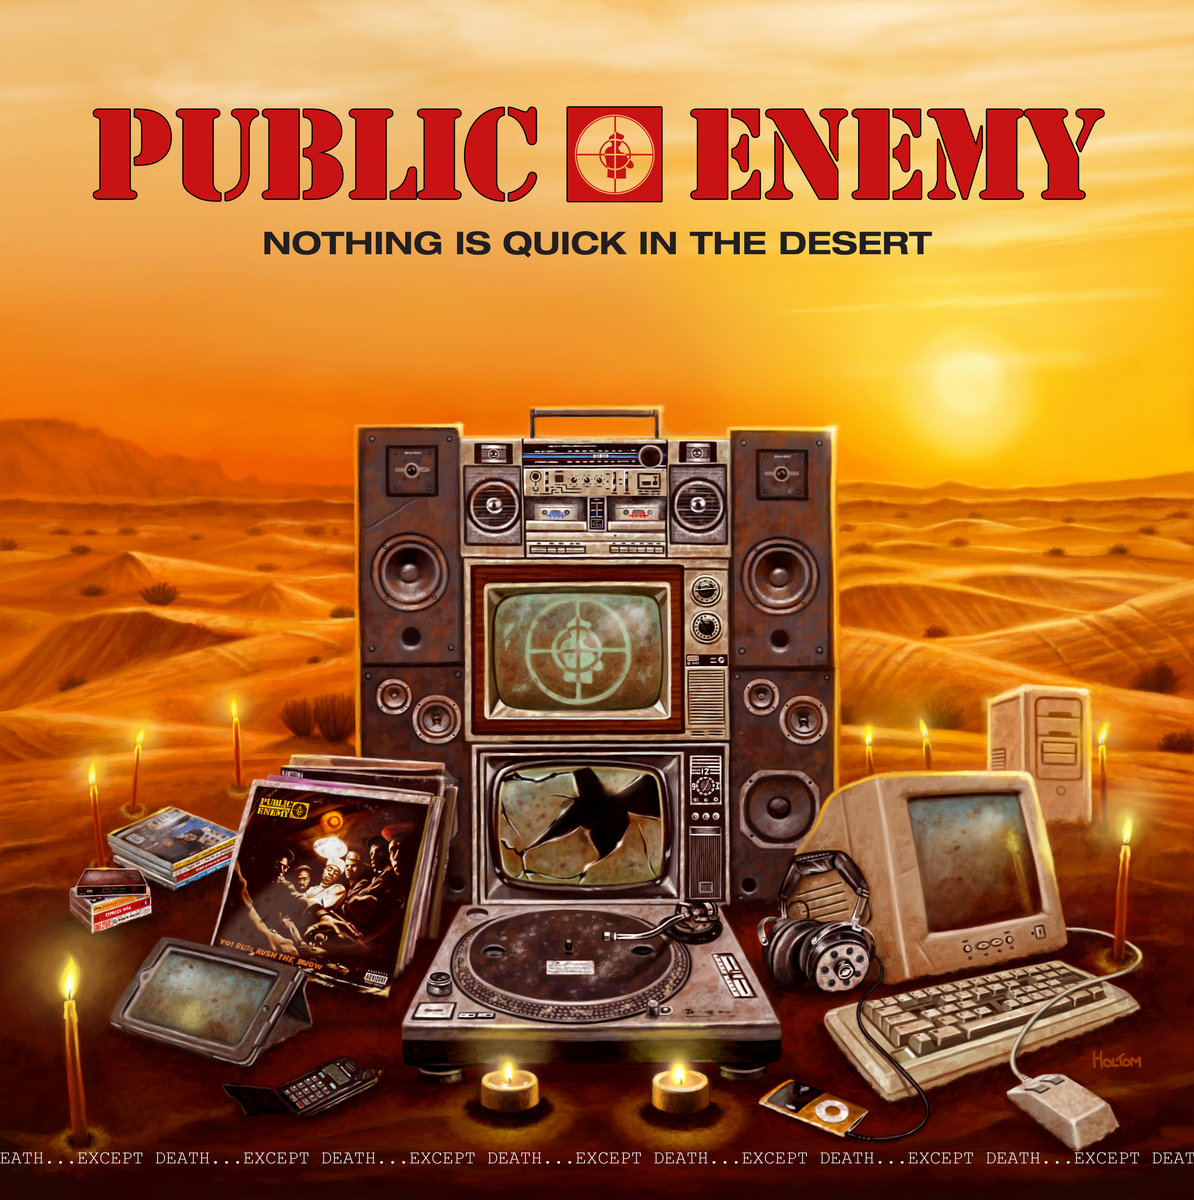 389 Public Enemy Nothing is Quick in